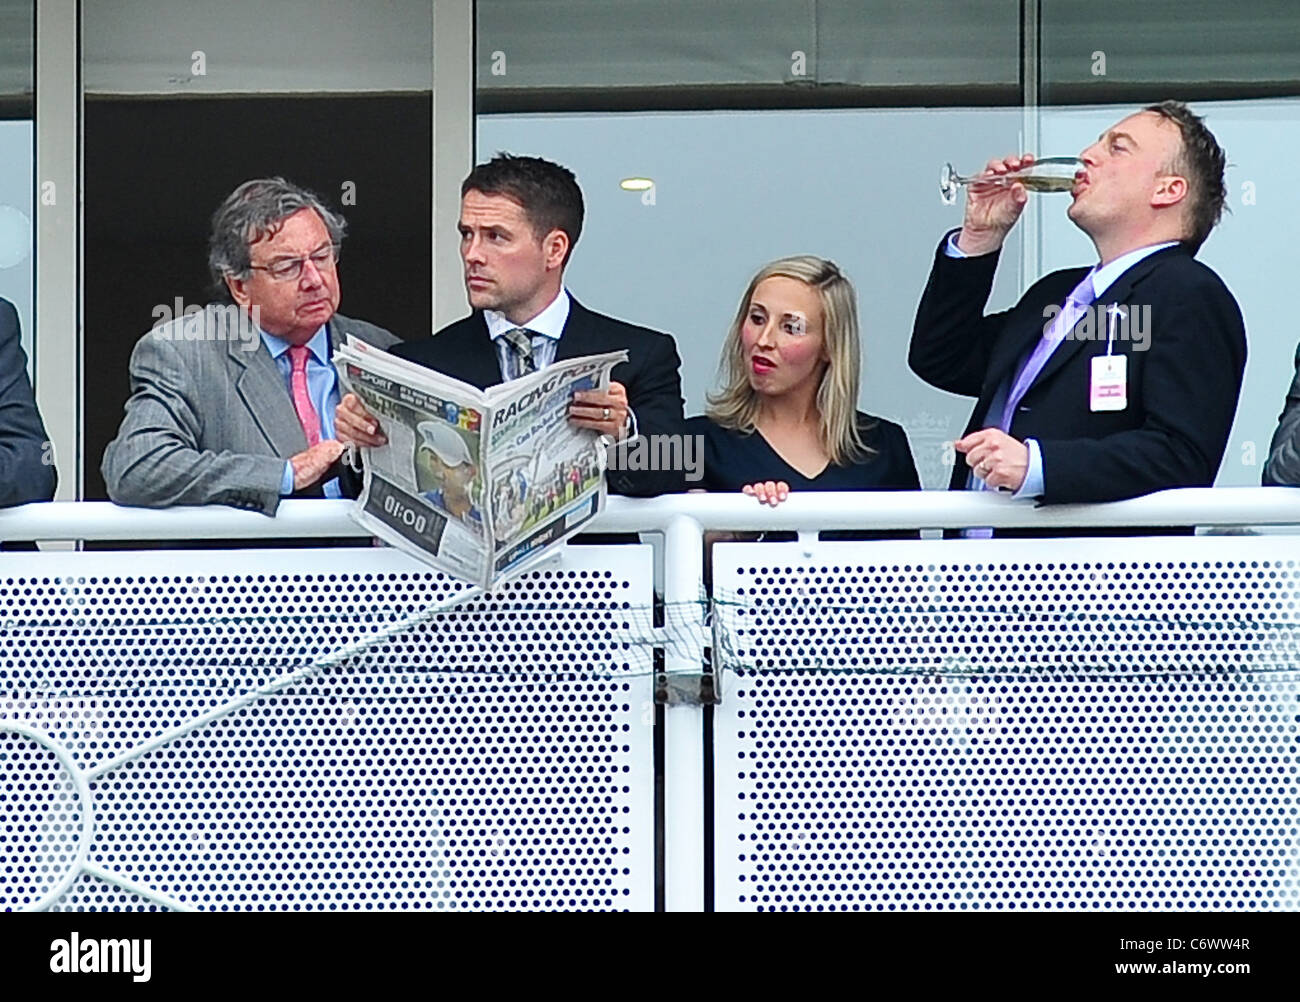 Michael Owen watching the horse racing on ladies day at Chester Races Chester, England - 05.05.10 - Stock Image